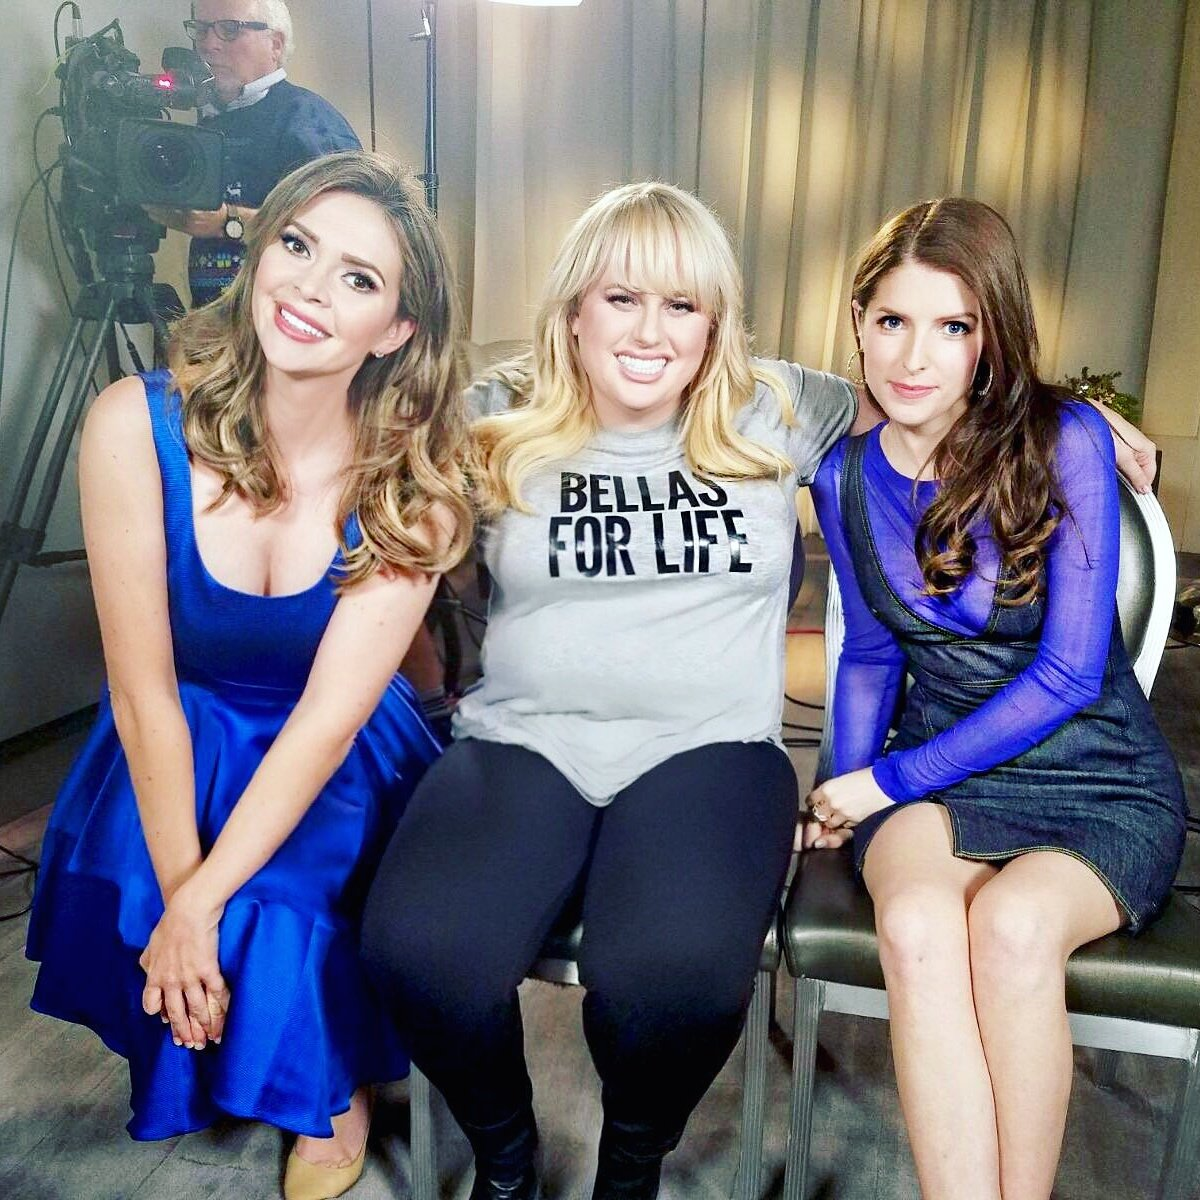 RebelWilson & @AnnaKendrick47 kick ass in @PitchPerfect. #BellasForLife  (except my singing sounds like Julia Roberts in the bath in Pretty Woman!)